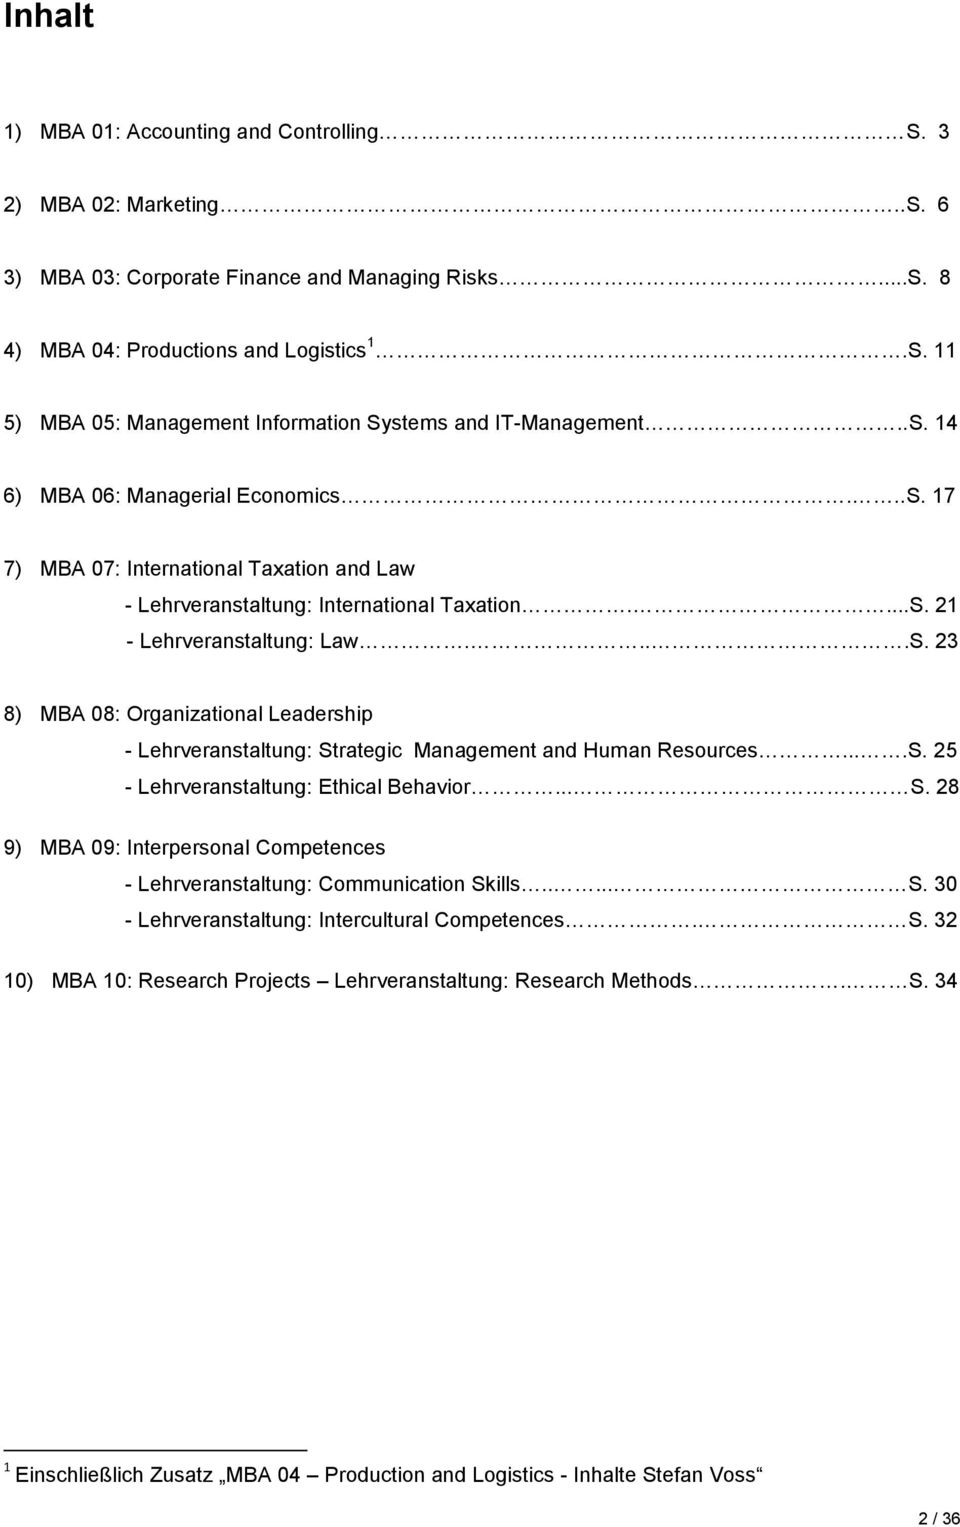 ...S. 25 - Lehrveranstaltung: Ethical Behavior... S. 28 9) MBA 09: Interpersonal Competences - Lehrveranstaltung: Communication Skills..... S. 30 - Lehrveranstaltung: Intercultural Competences. S. 32 10) MBA 10: Research Projects Lehrveranstaltung: Research Methods.